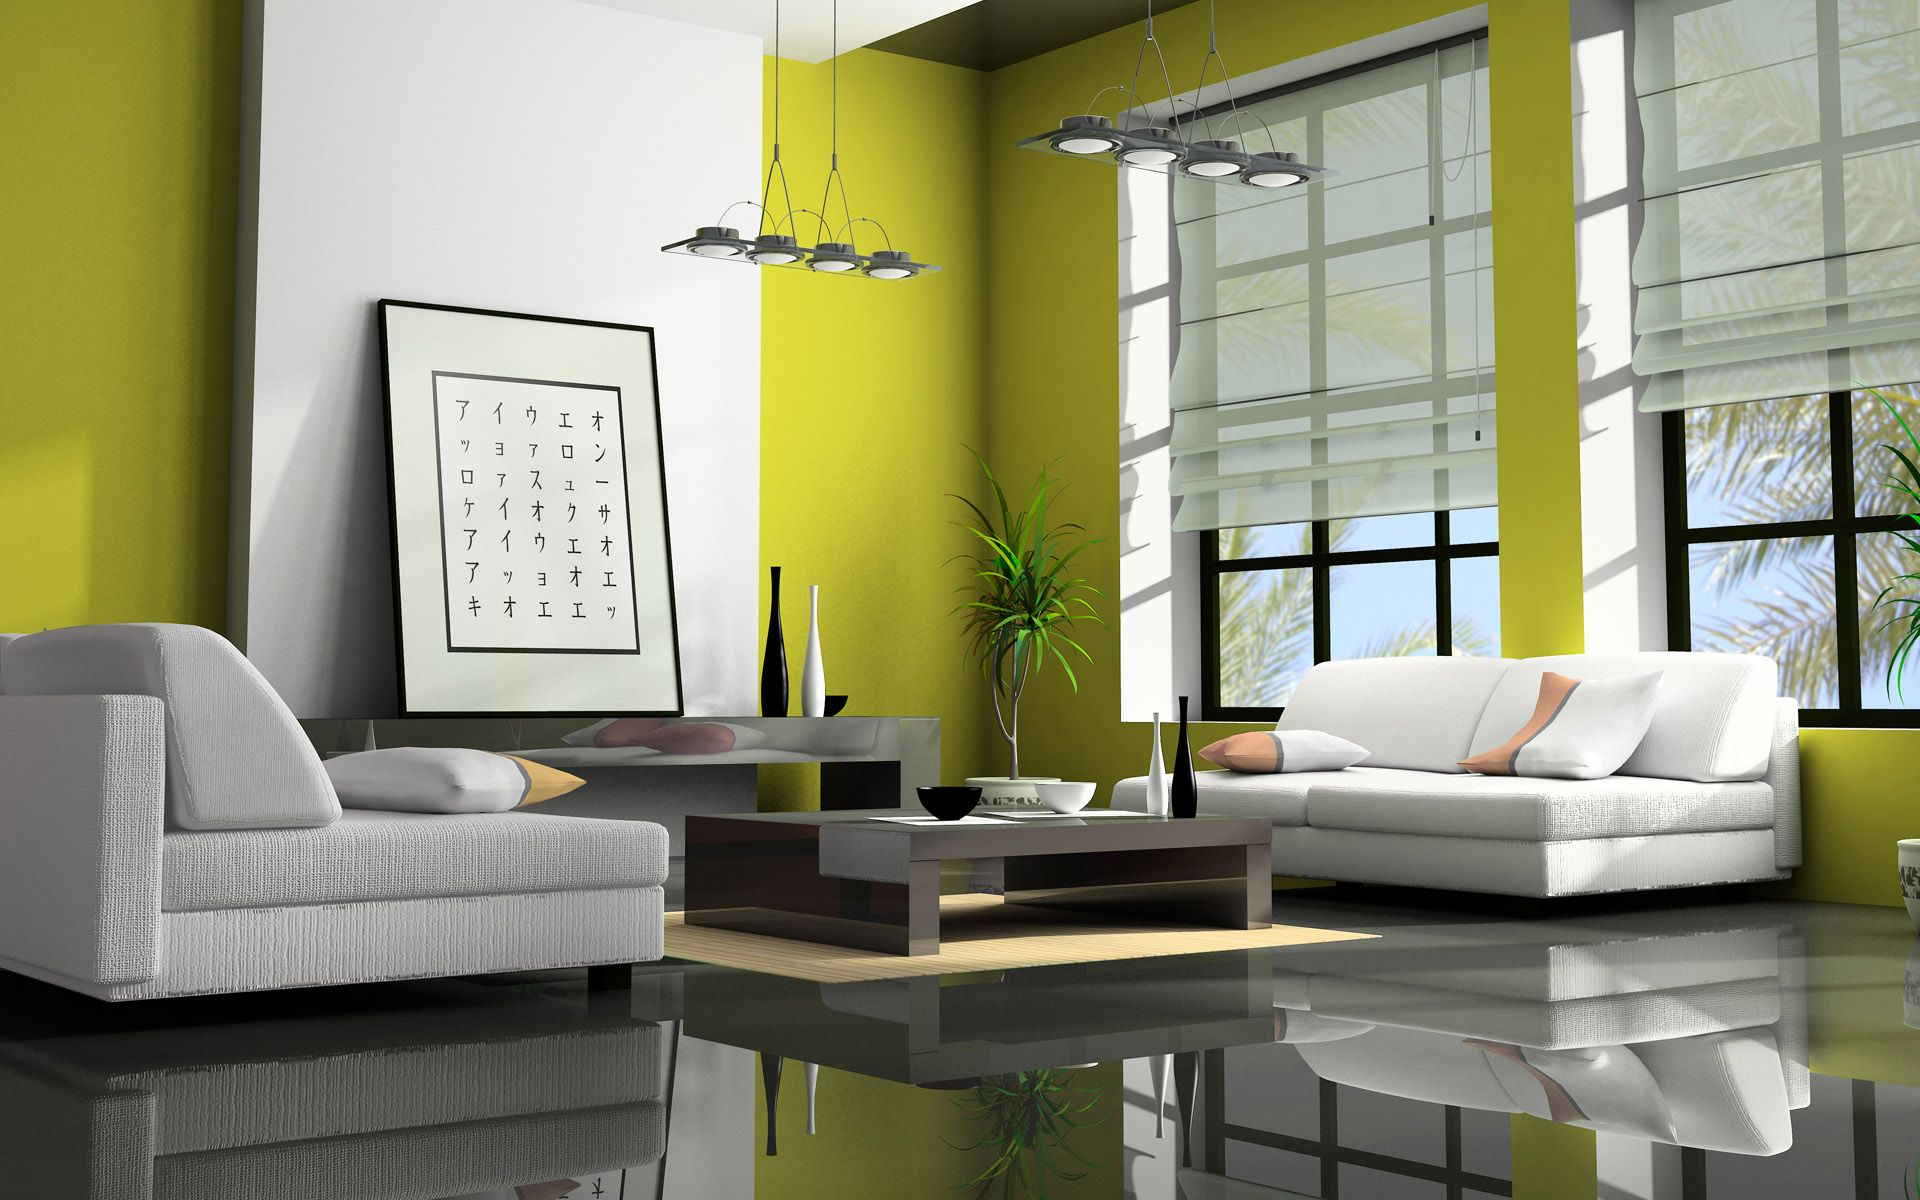 Living Room Design Program Mesmerizing Diseño De Interiores Arquitectura  Room Design Software Living Design Inspiration